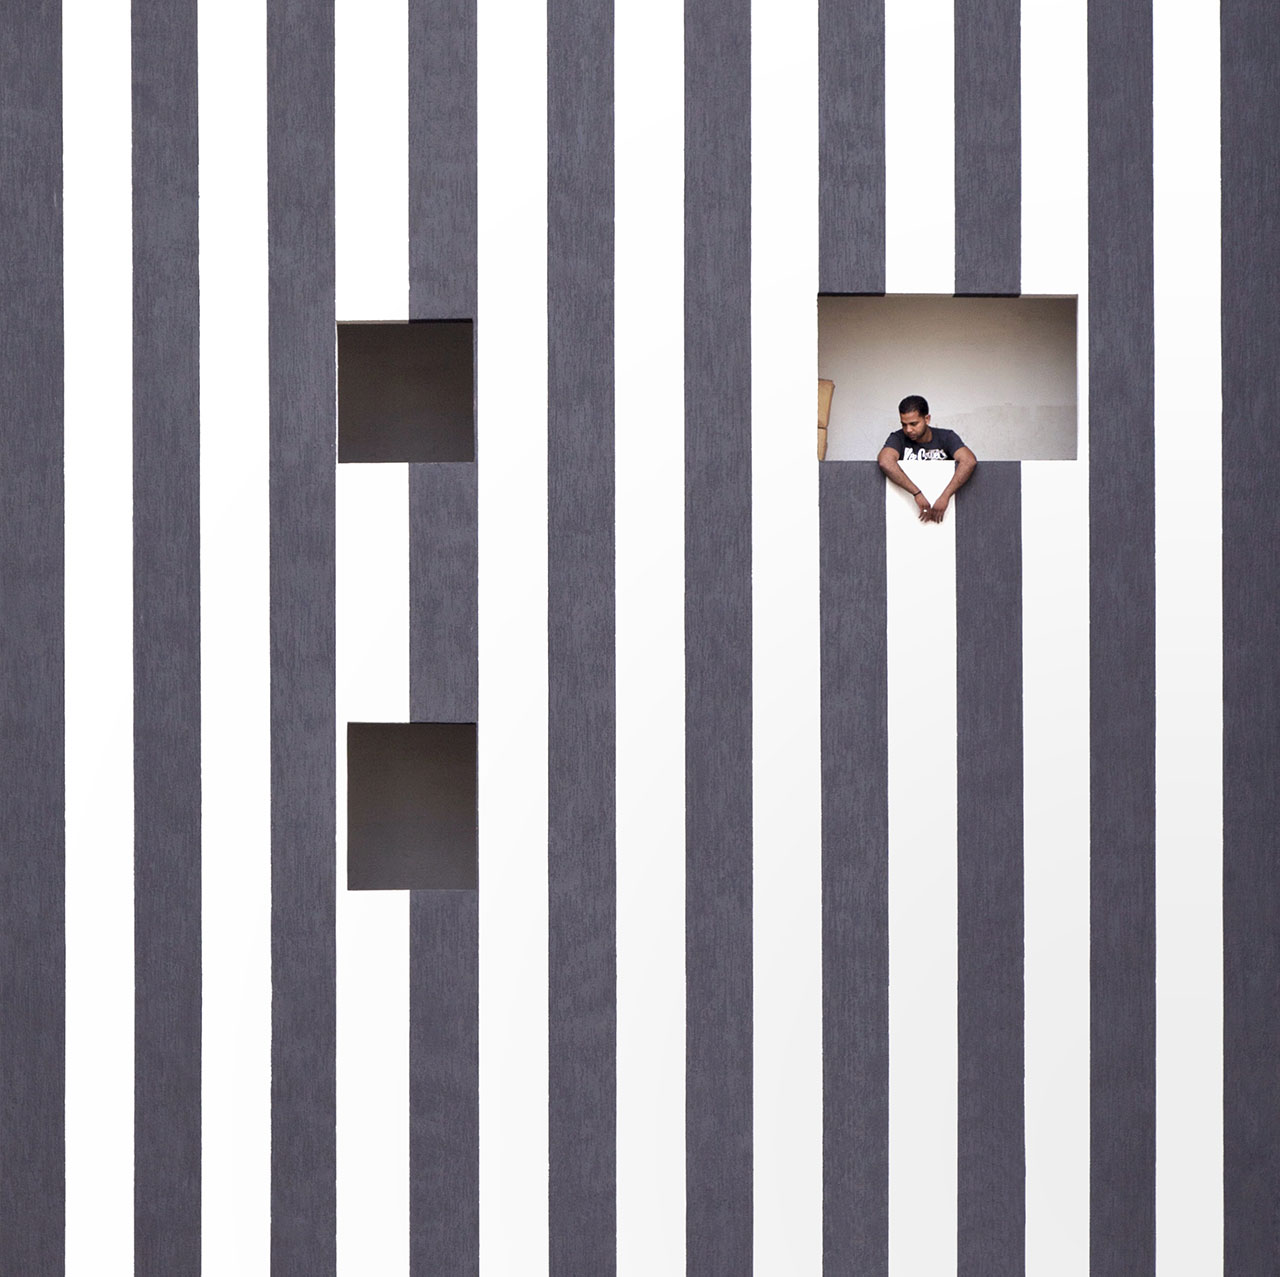 Zebra facade, photo © Serge Najjar.